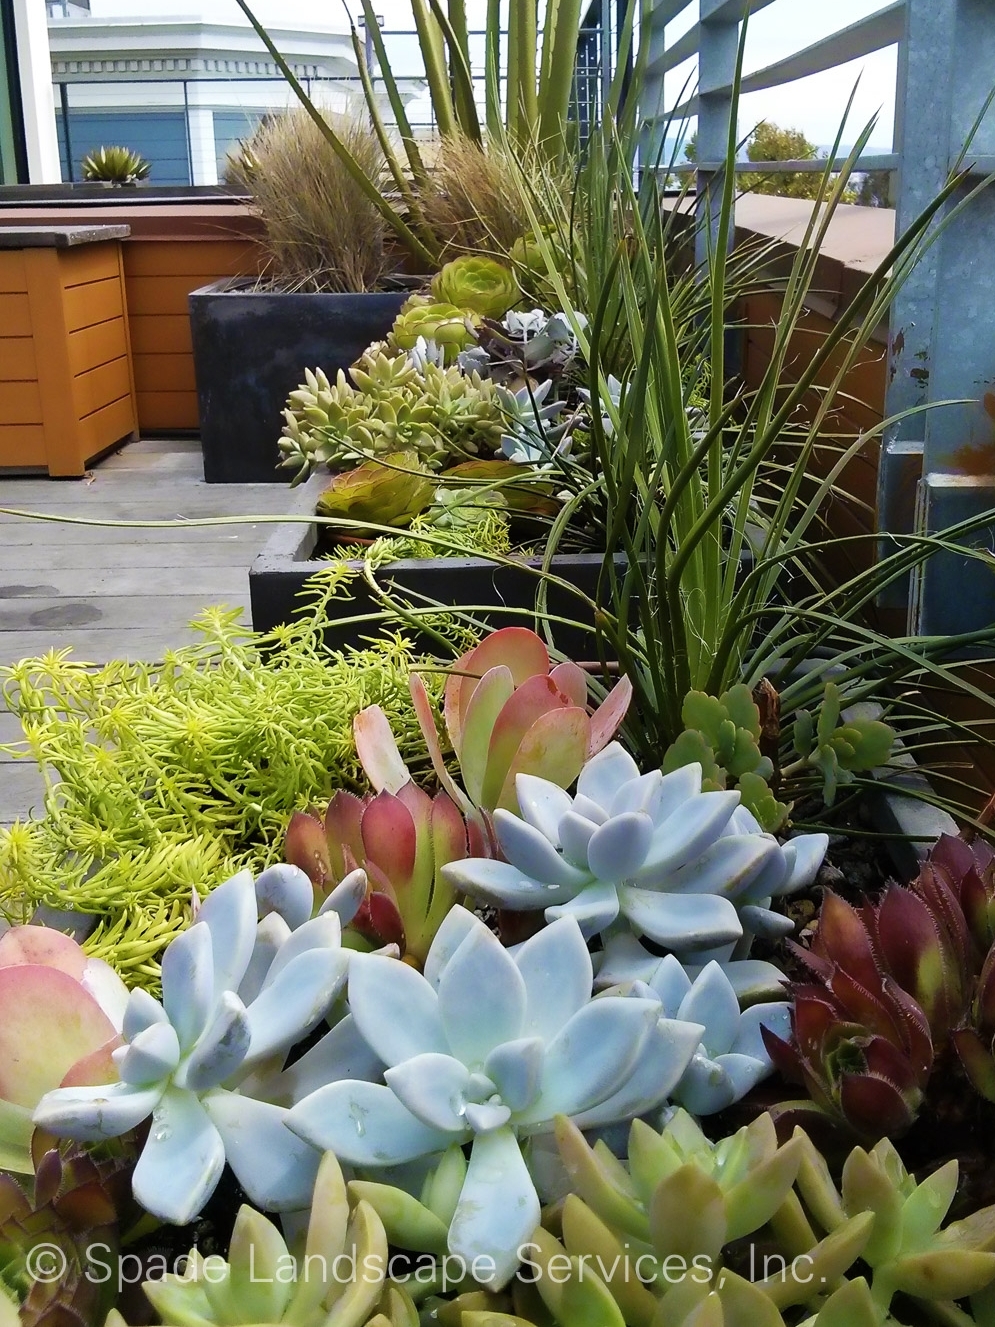 Colorful succulents with distinct shapes hide the hard edges of bespoke containers that add more color and texture to our gardening services installation in San Francisco. Landscaping creations such as this are present throughout the Bay Area.